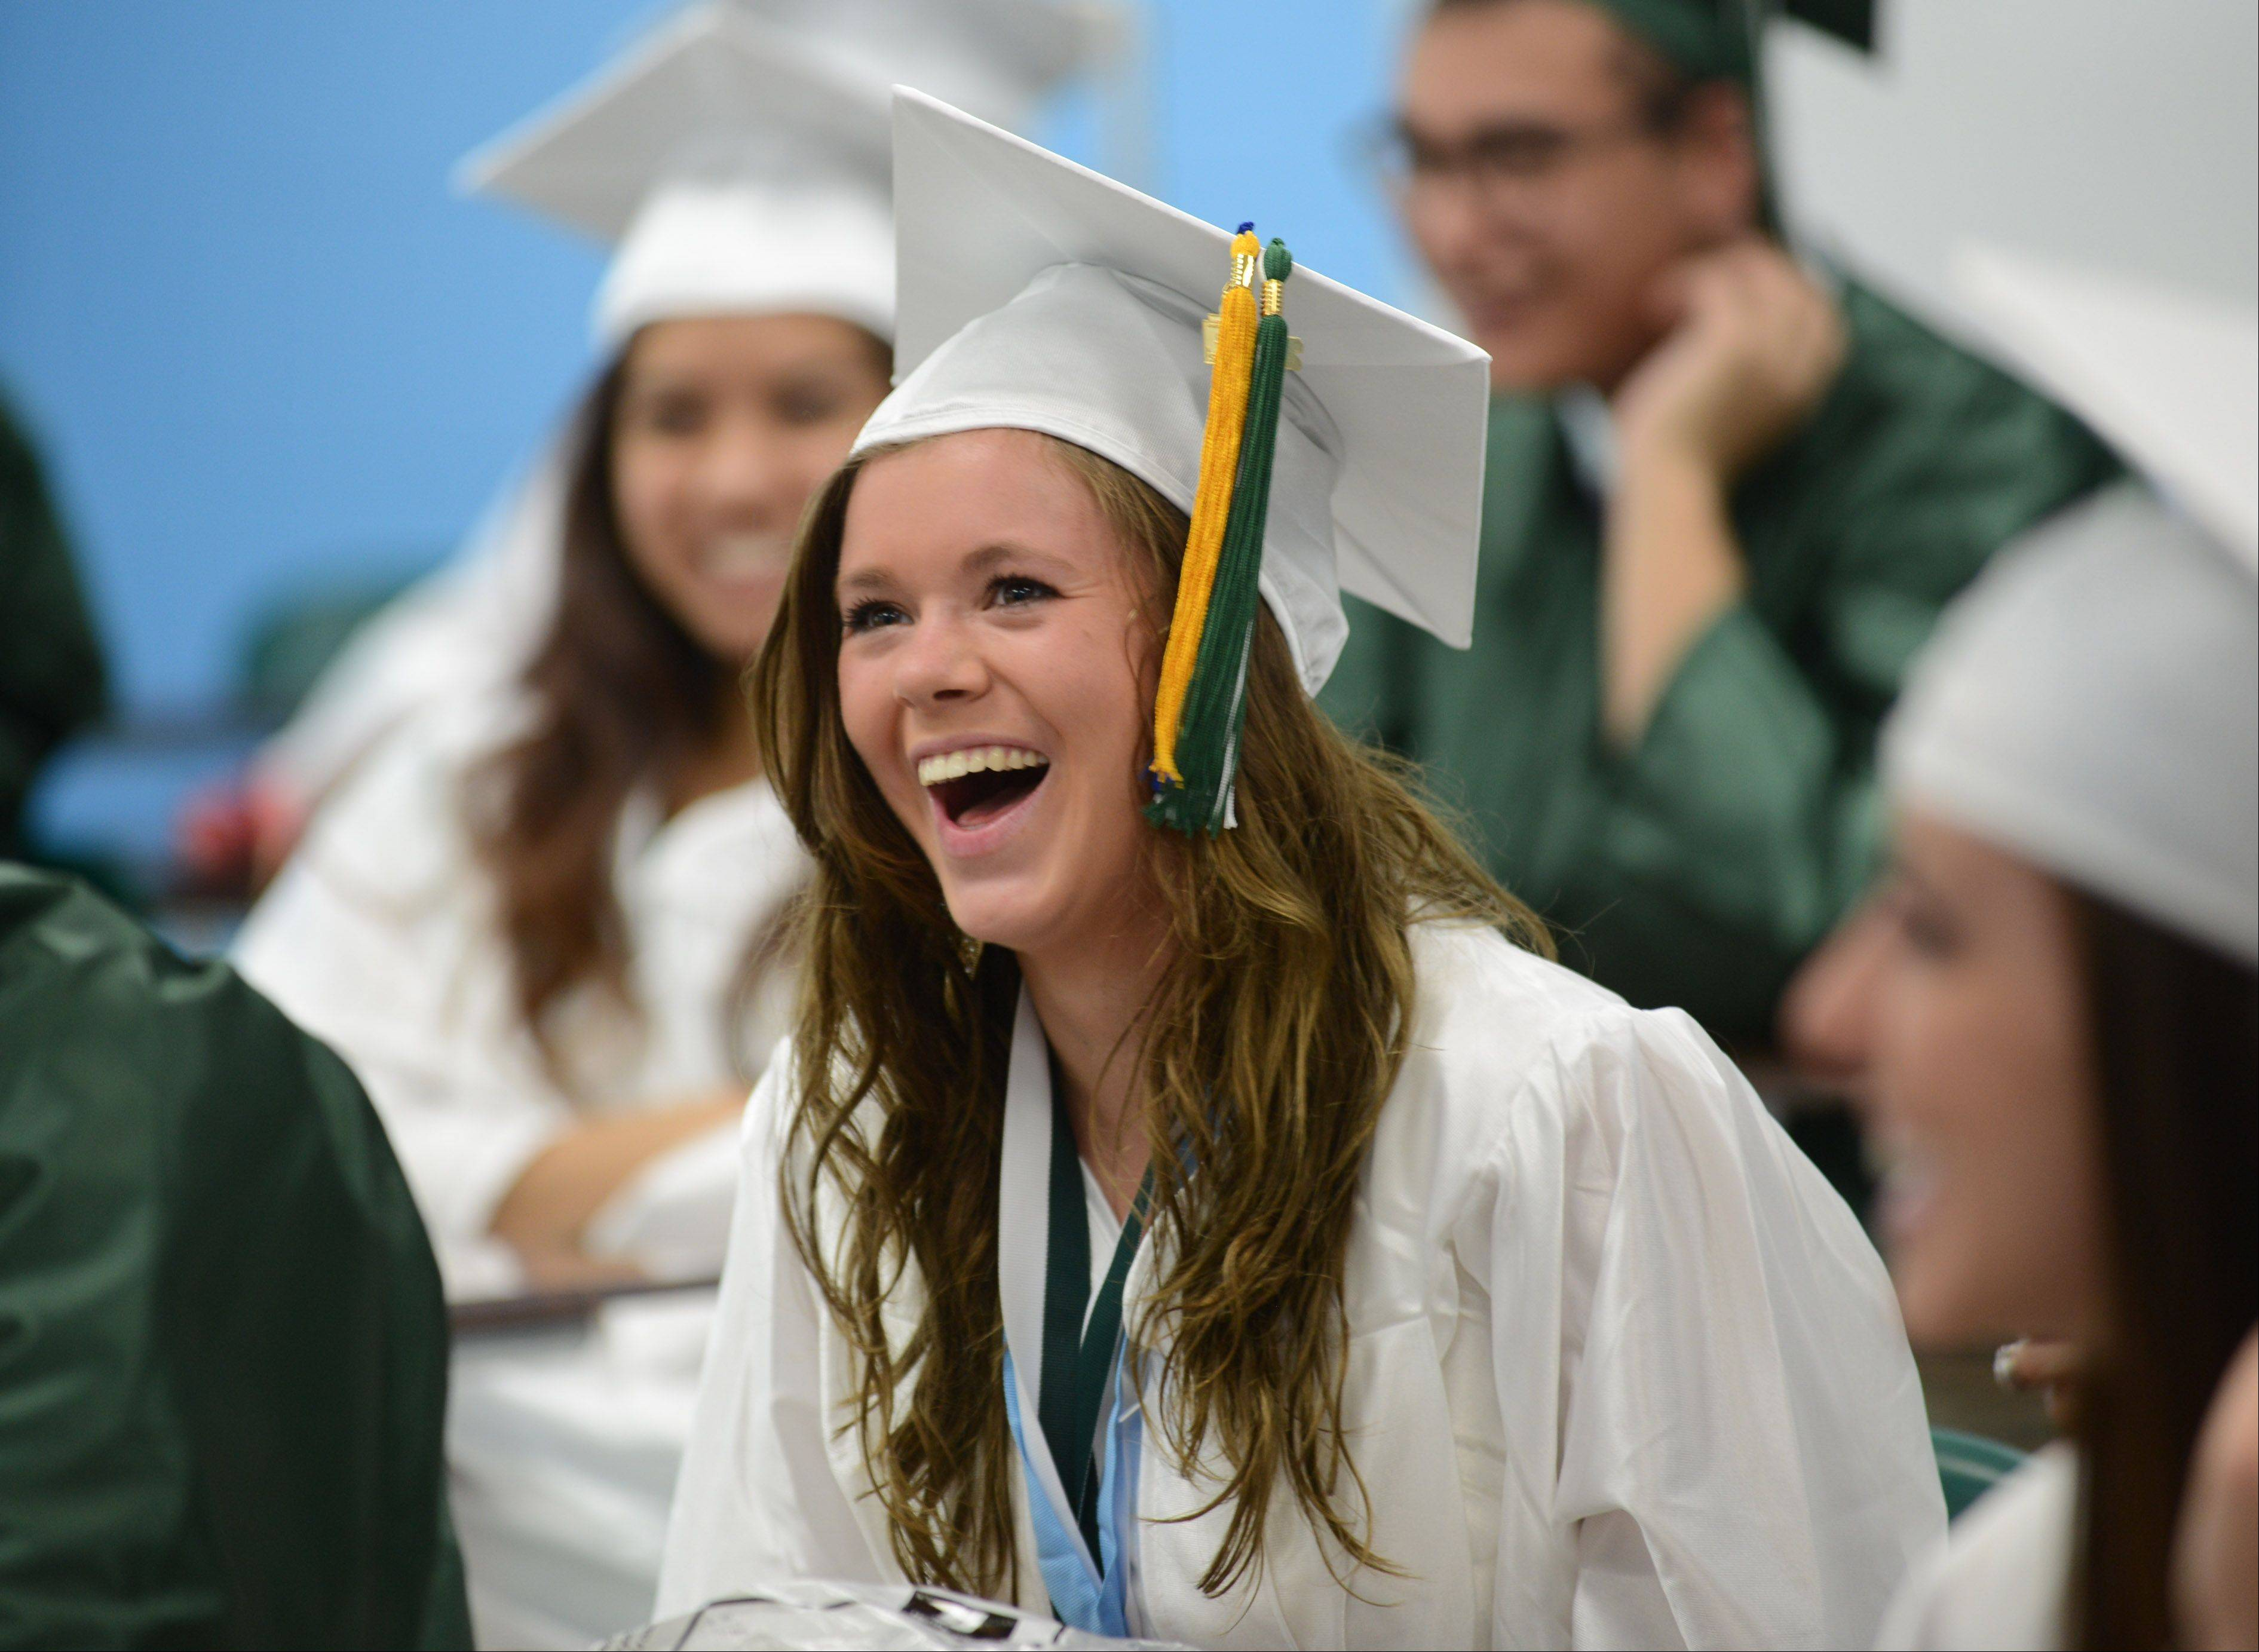 Grayslake Central High School senior Silvie Lehtis shares a laugh with fellow graduates before the start of Sunday's graduation ceremony at the school.